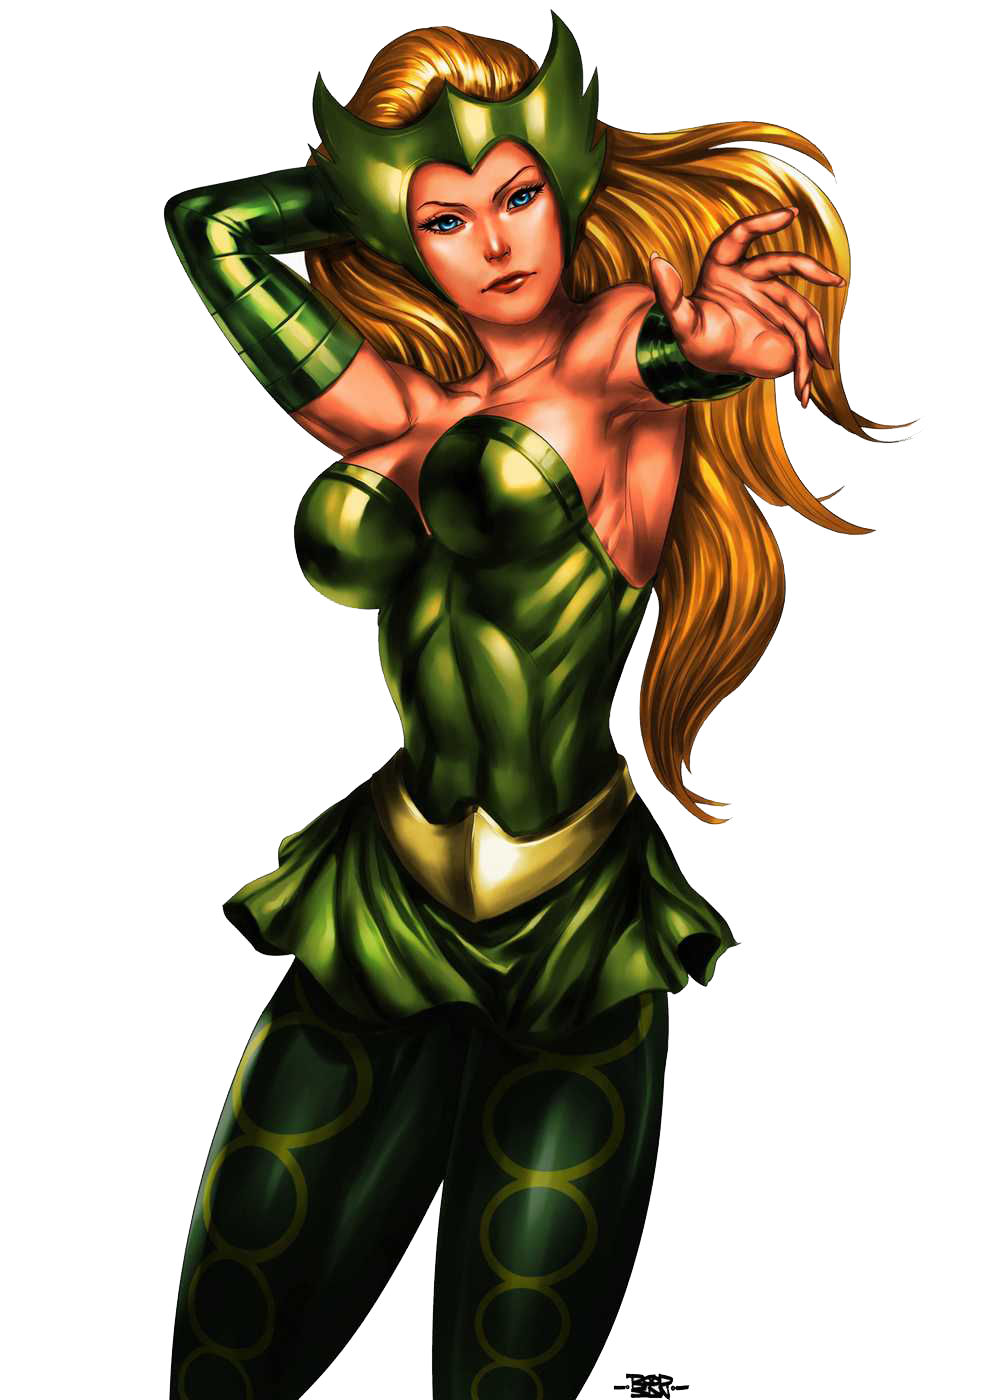 Download PNG image - Enchantress Png Clipart - Enchantress HD PNG